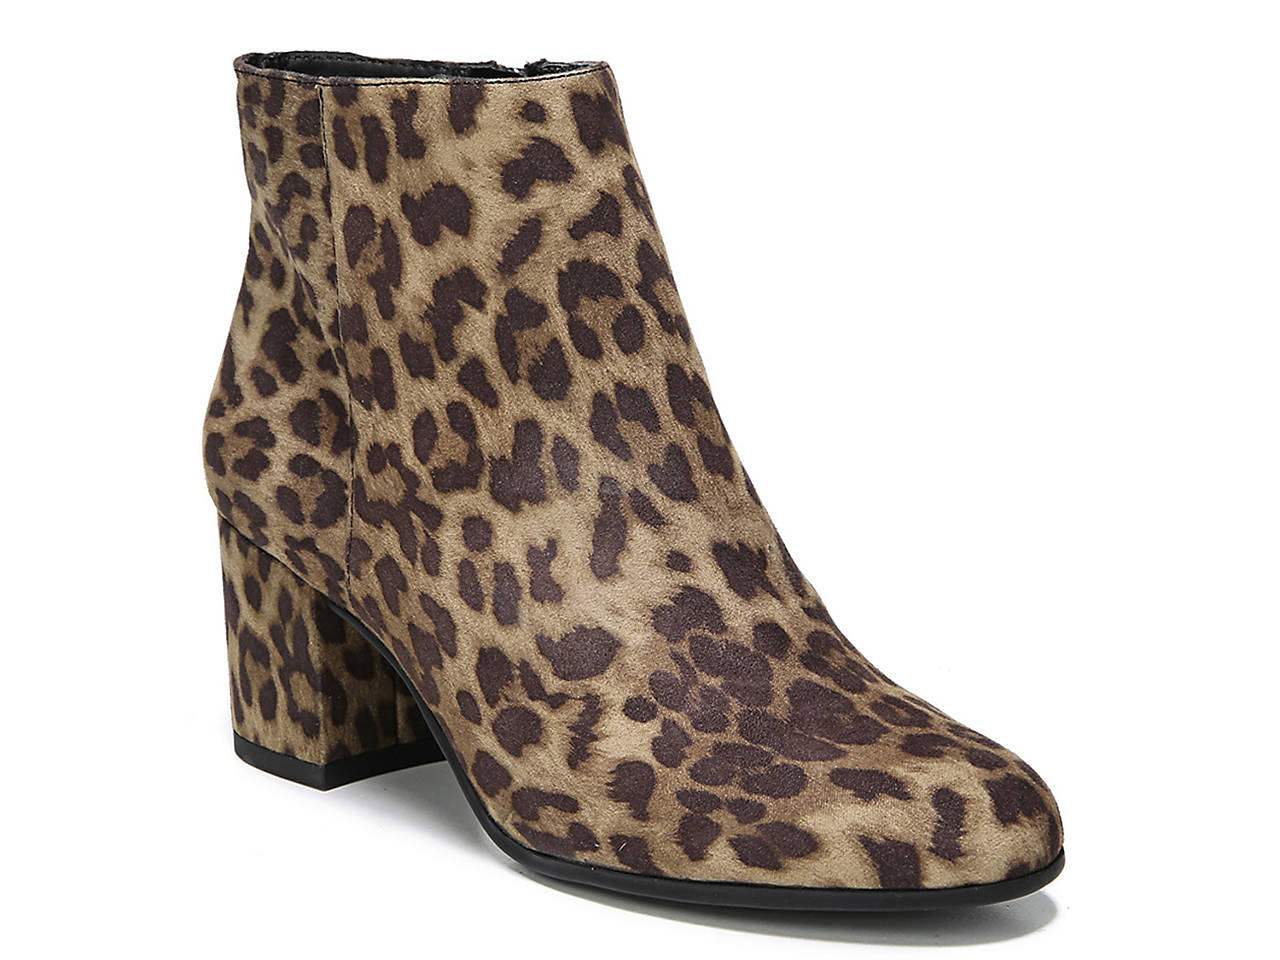 257bf8b4d7c08 Circus by Sam Edelman Vikki Bootie Women s Shoes